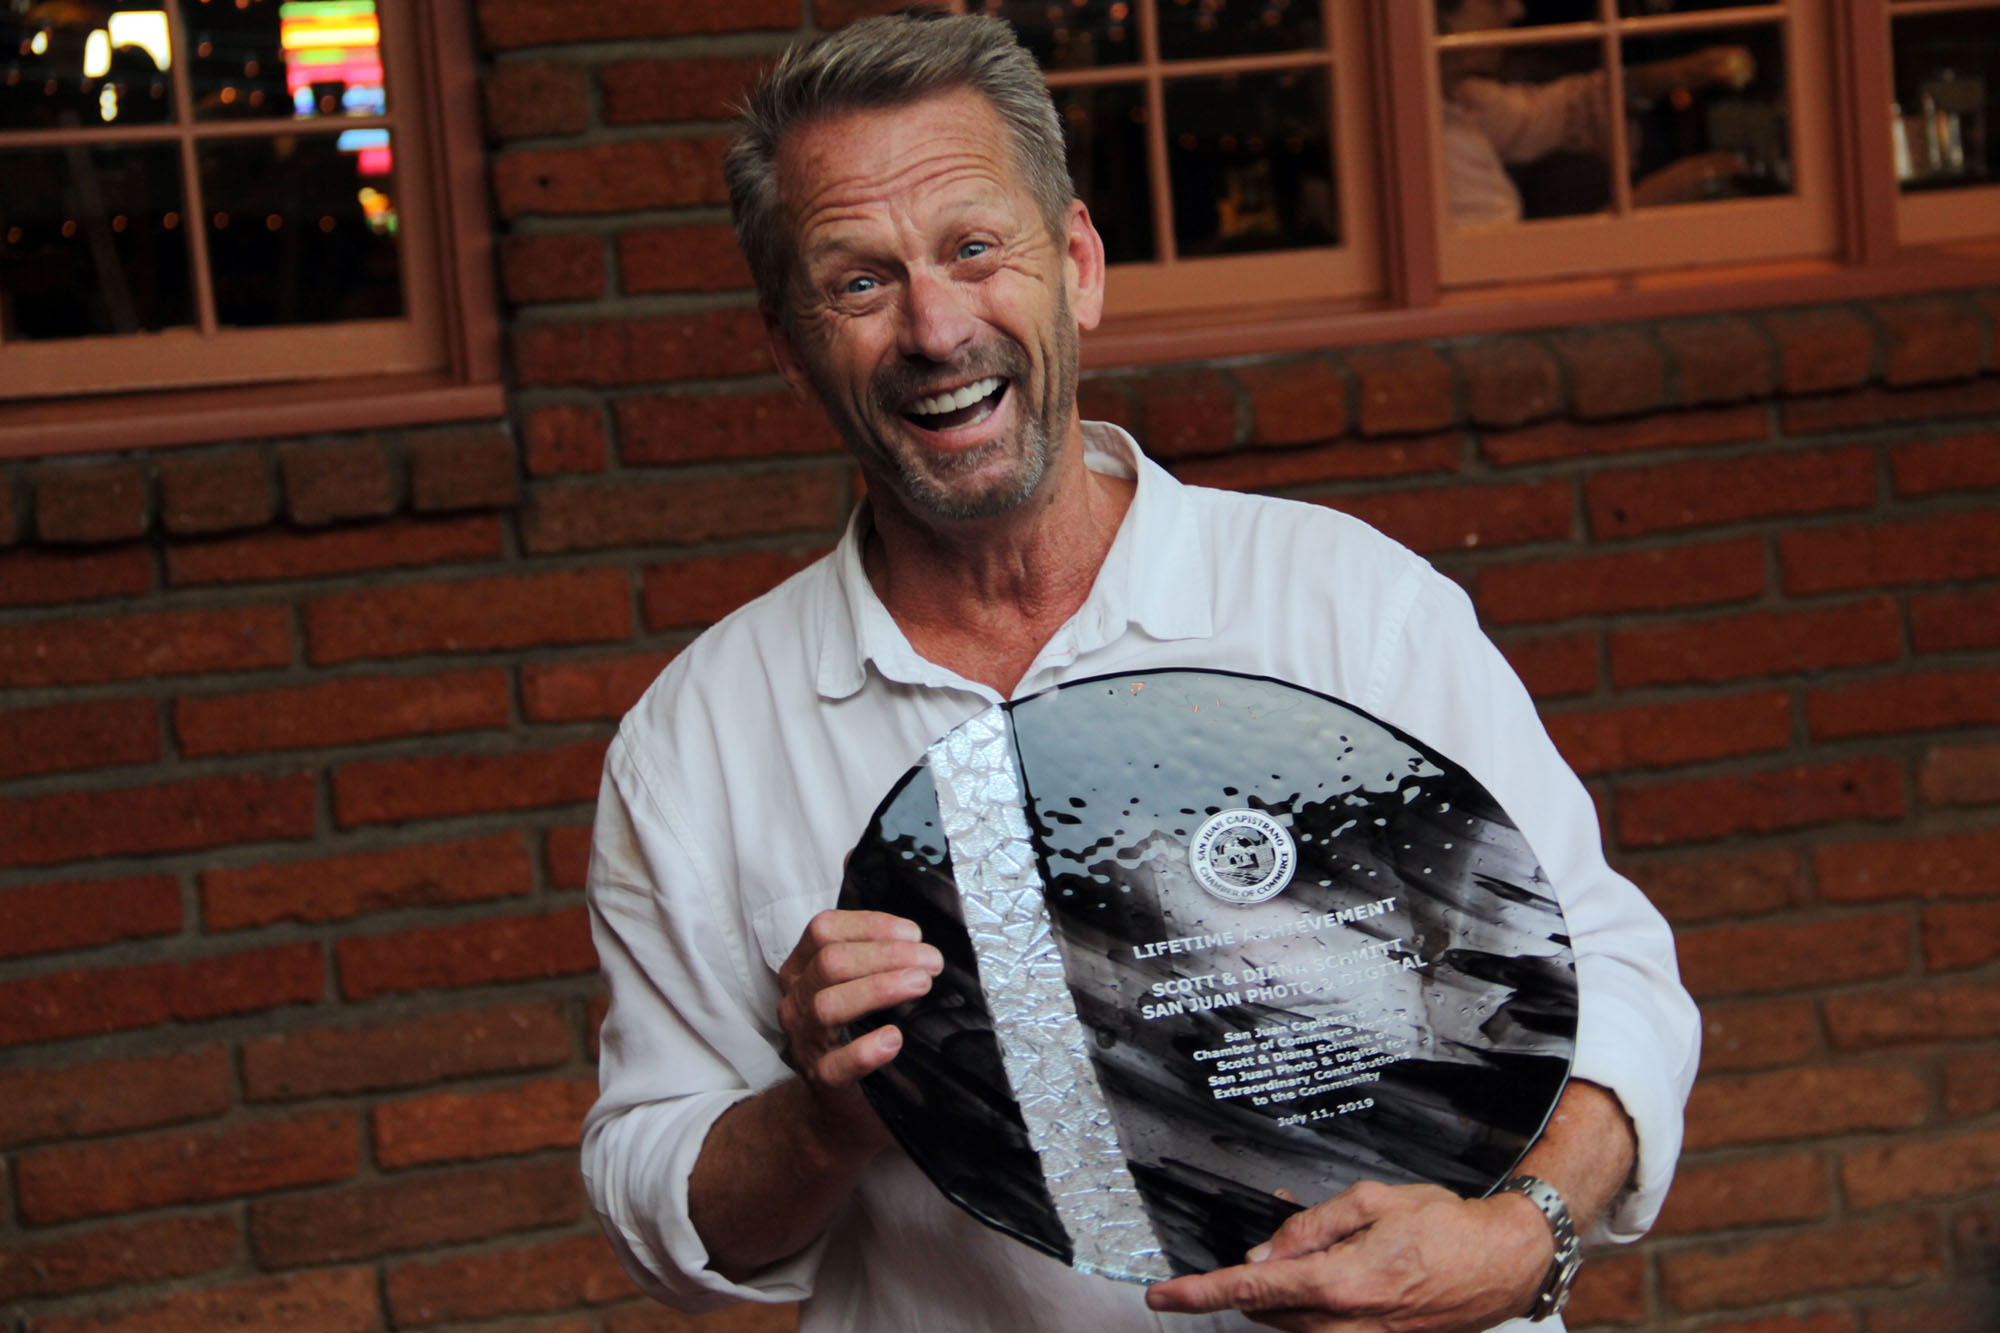 Scott Schmitt joyfully poses with the Lifetime Achievement Award he and his wife, Diana Schmitt, received during the Chamber of Commerce's Annual Installation and Awards Banquet on Thursday, July 11. Photo: Shawn Raymundo